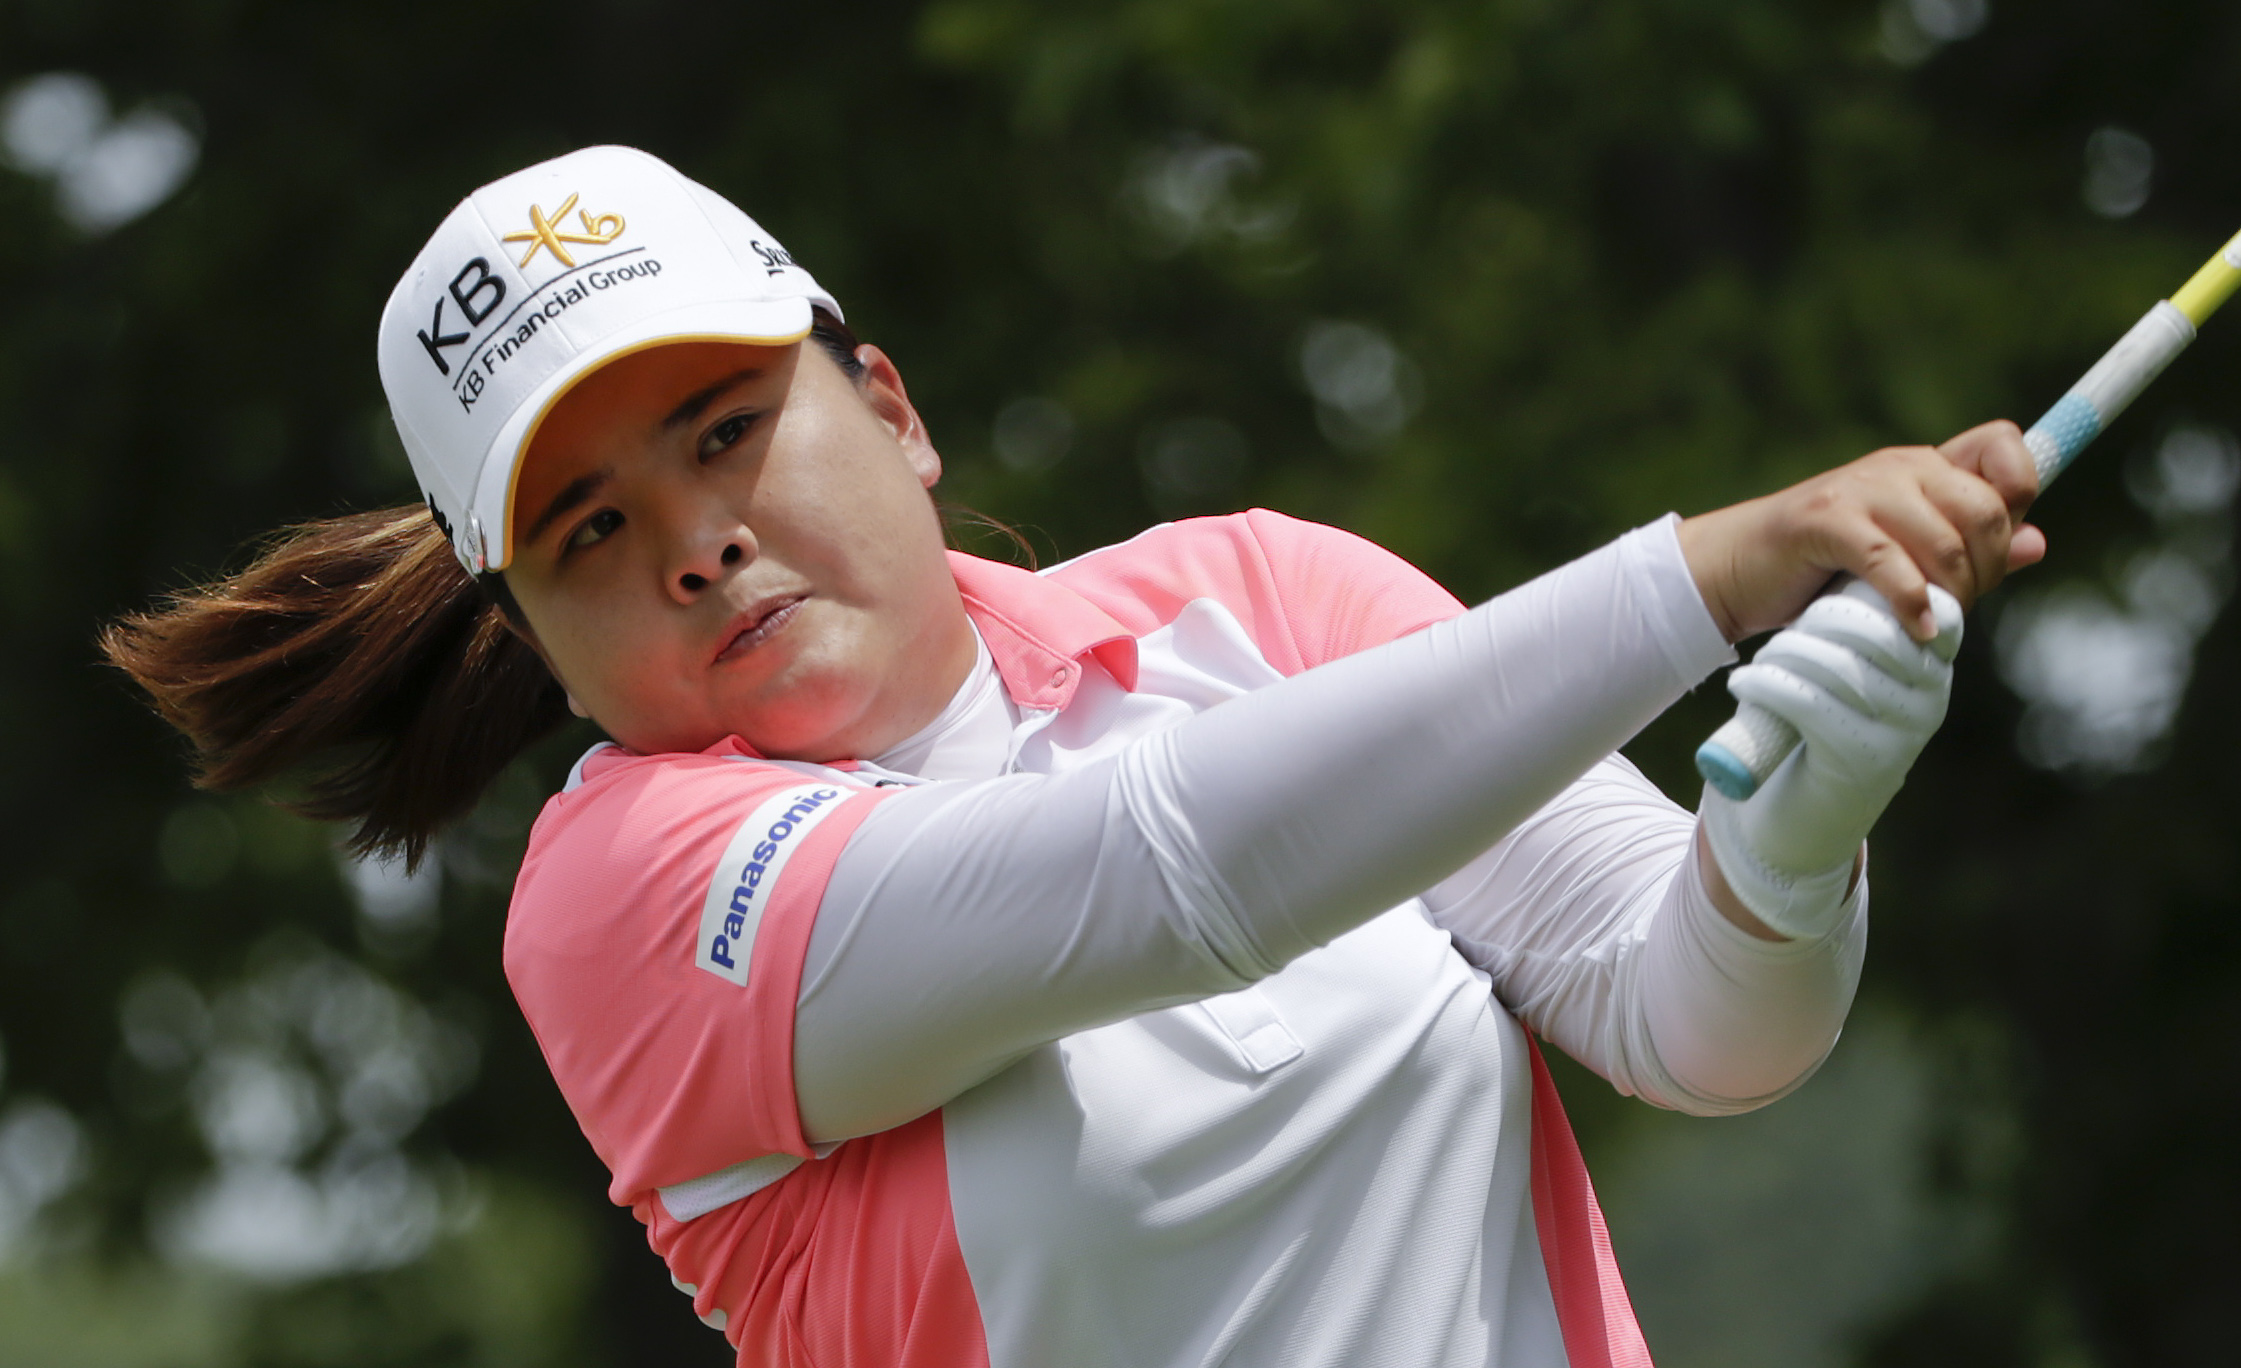 South Korea's Inbee Park hits off the second tee during the final round of the U.S. Women's Open golf tournament at Lancaster Country Club, Sunday, July 12, 2015 in Lancaster, Pa. (AP Photo/Frank Franklin II)